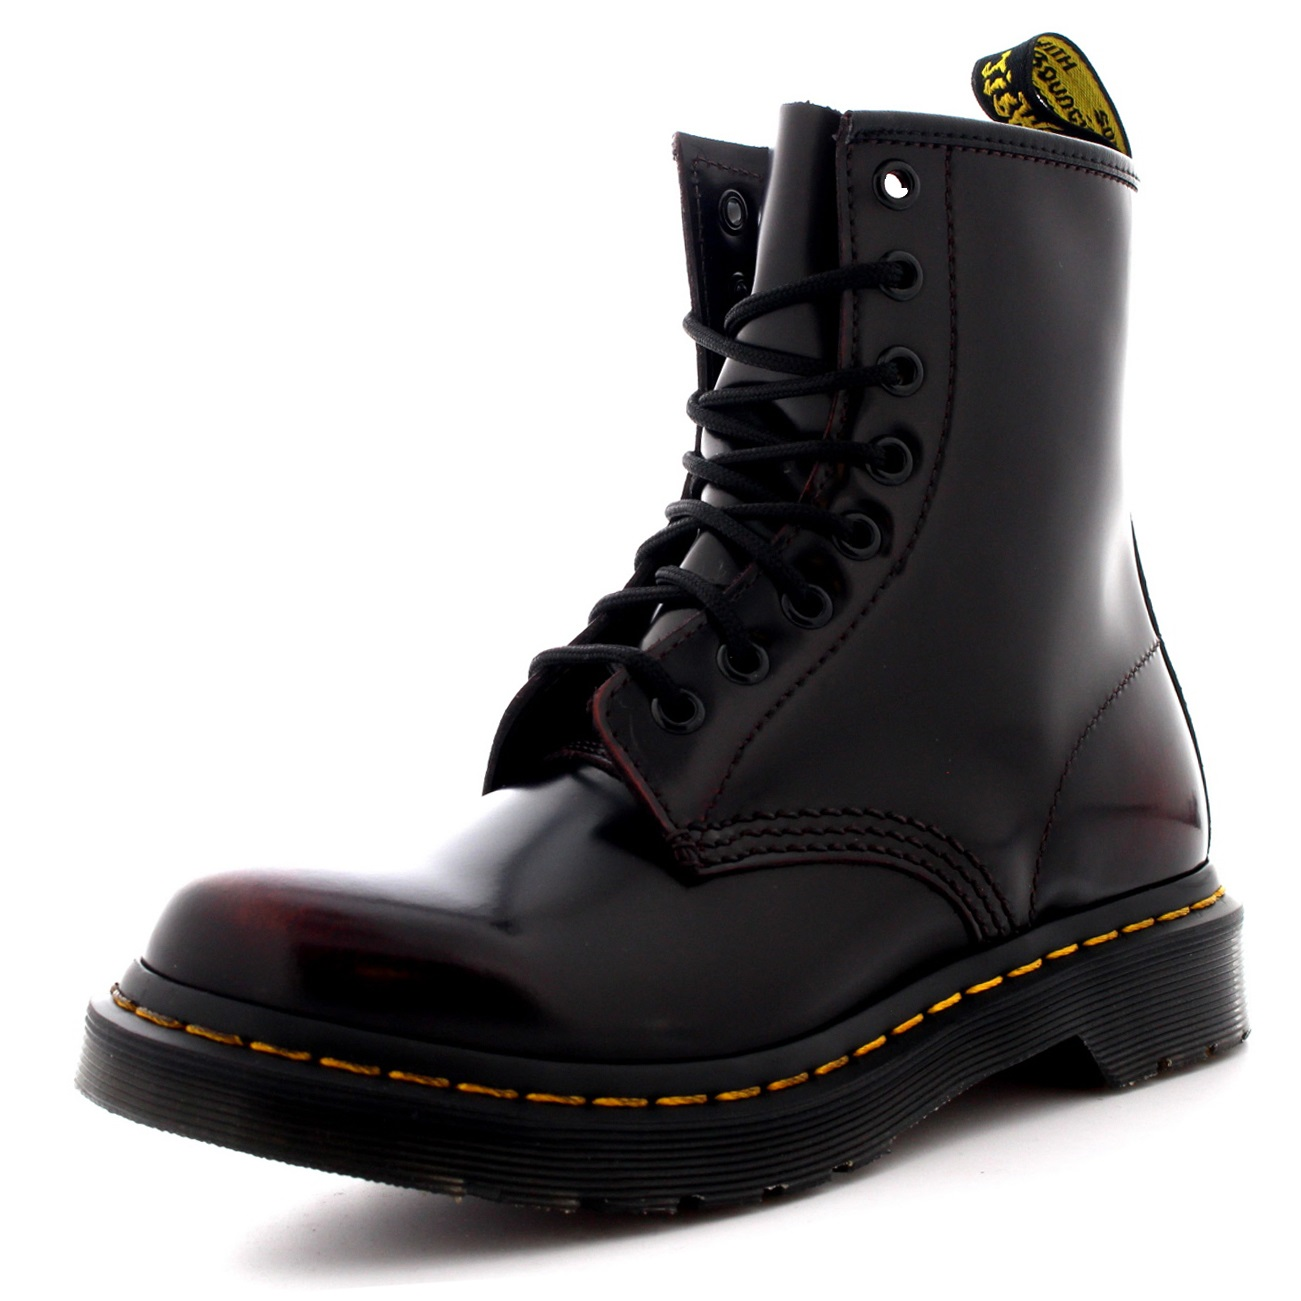 Details about Womens Dr Martens 1460 Arcadia Burnished Leather Cherry Red  Ankle Boots US 5-11 3cb4db8dc2